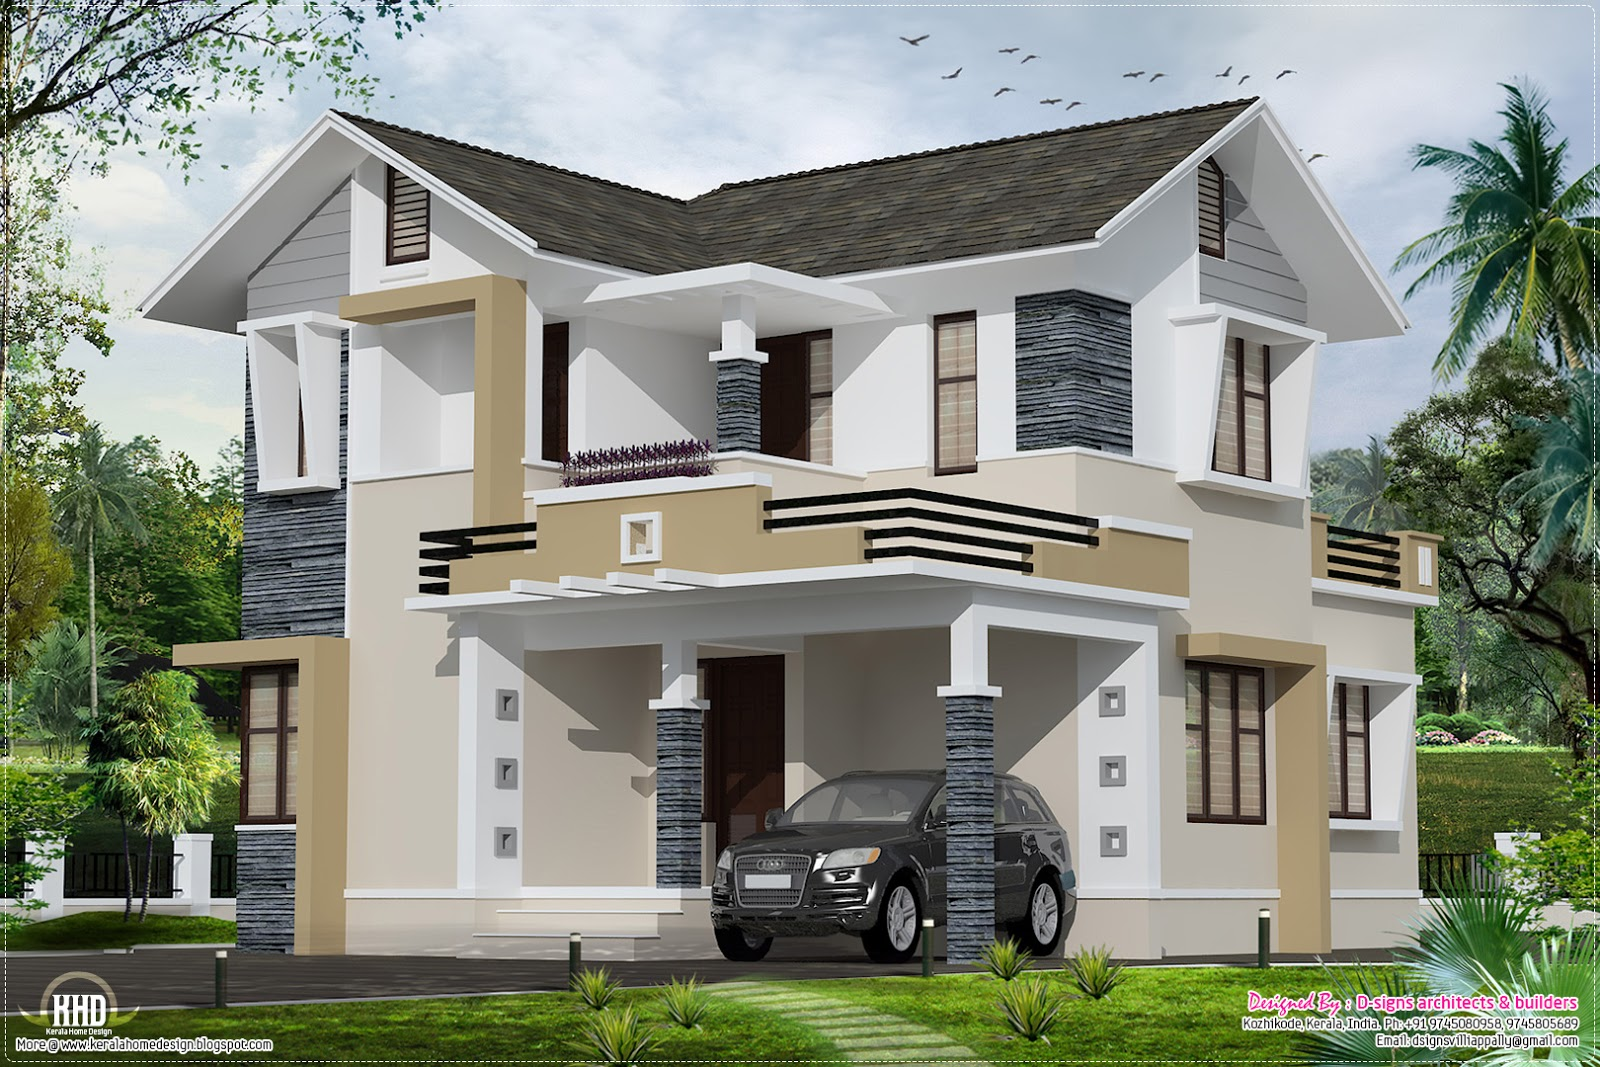 Stylish small home design - Kerala home design and floor plans